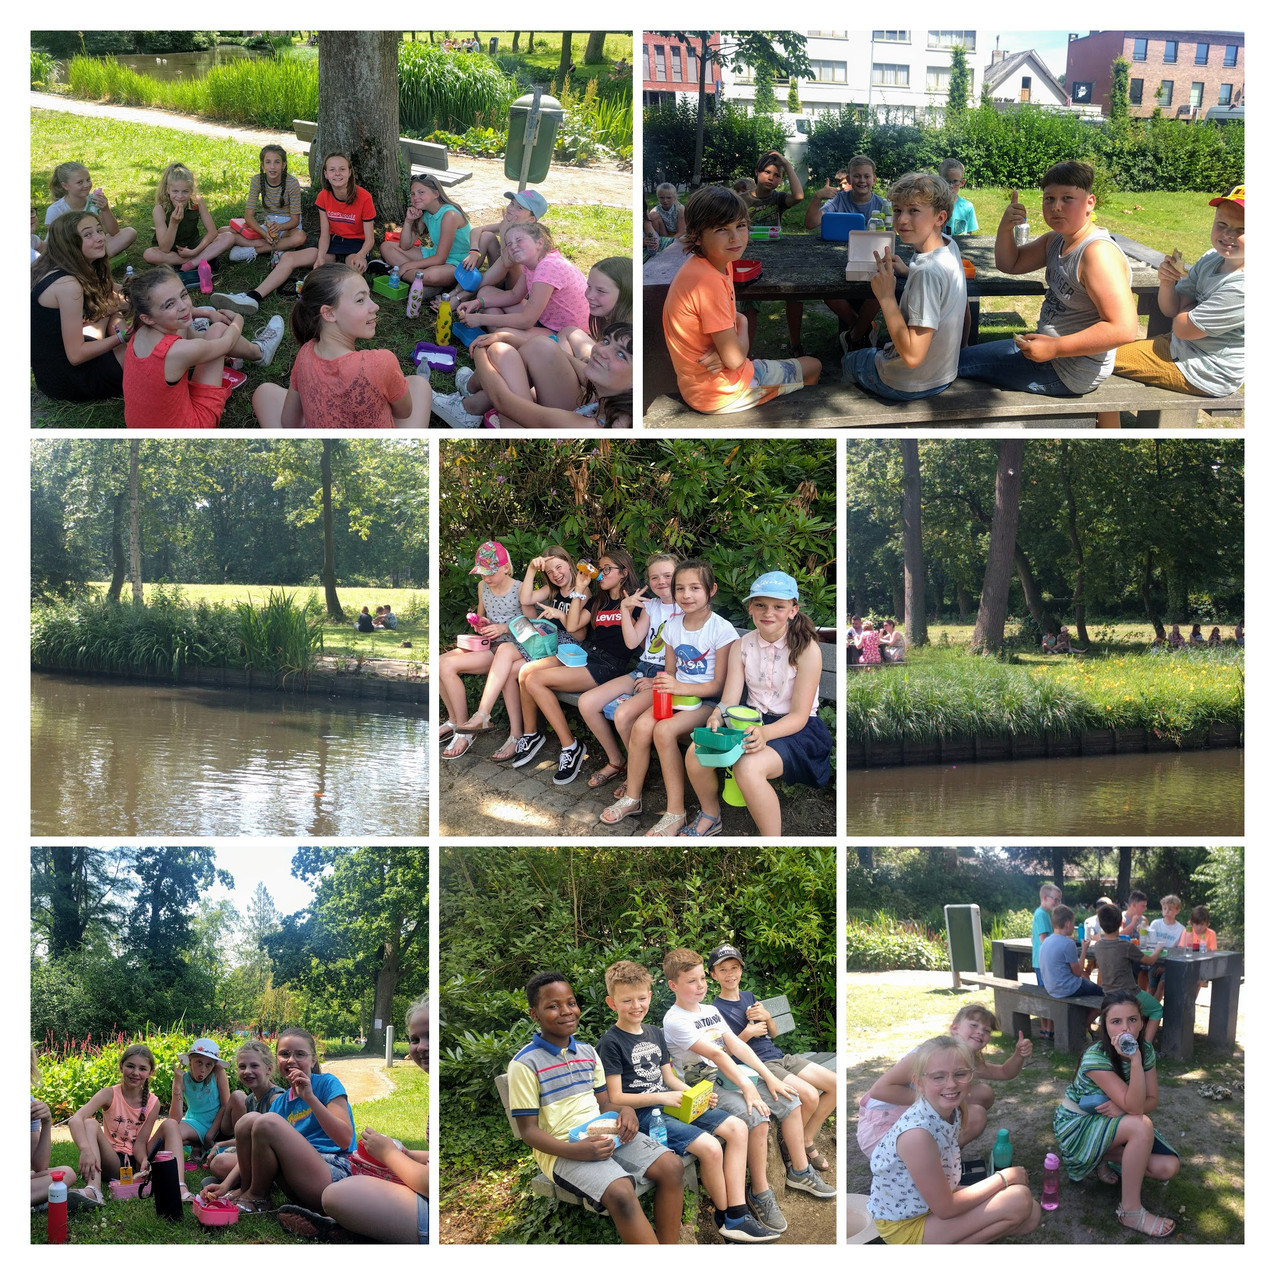 IMG_20190624_121154-COLLAGE